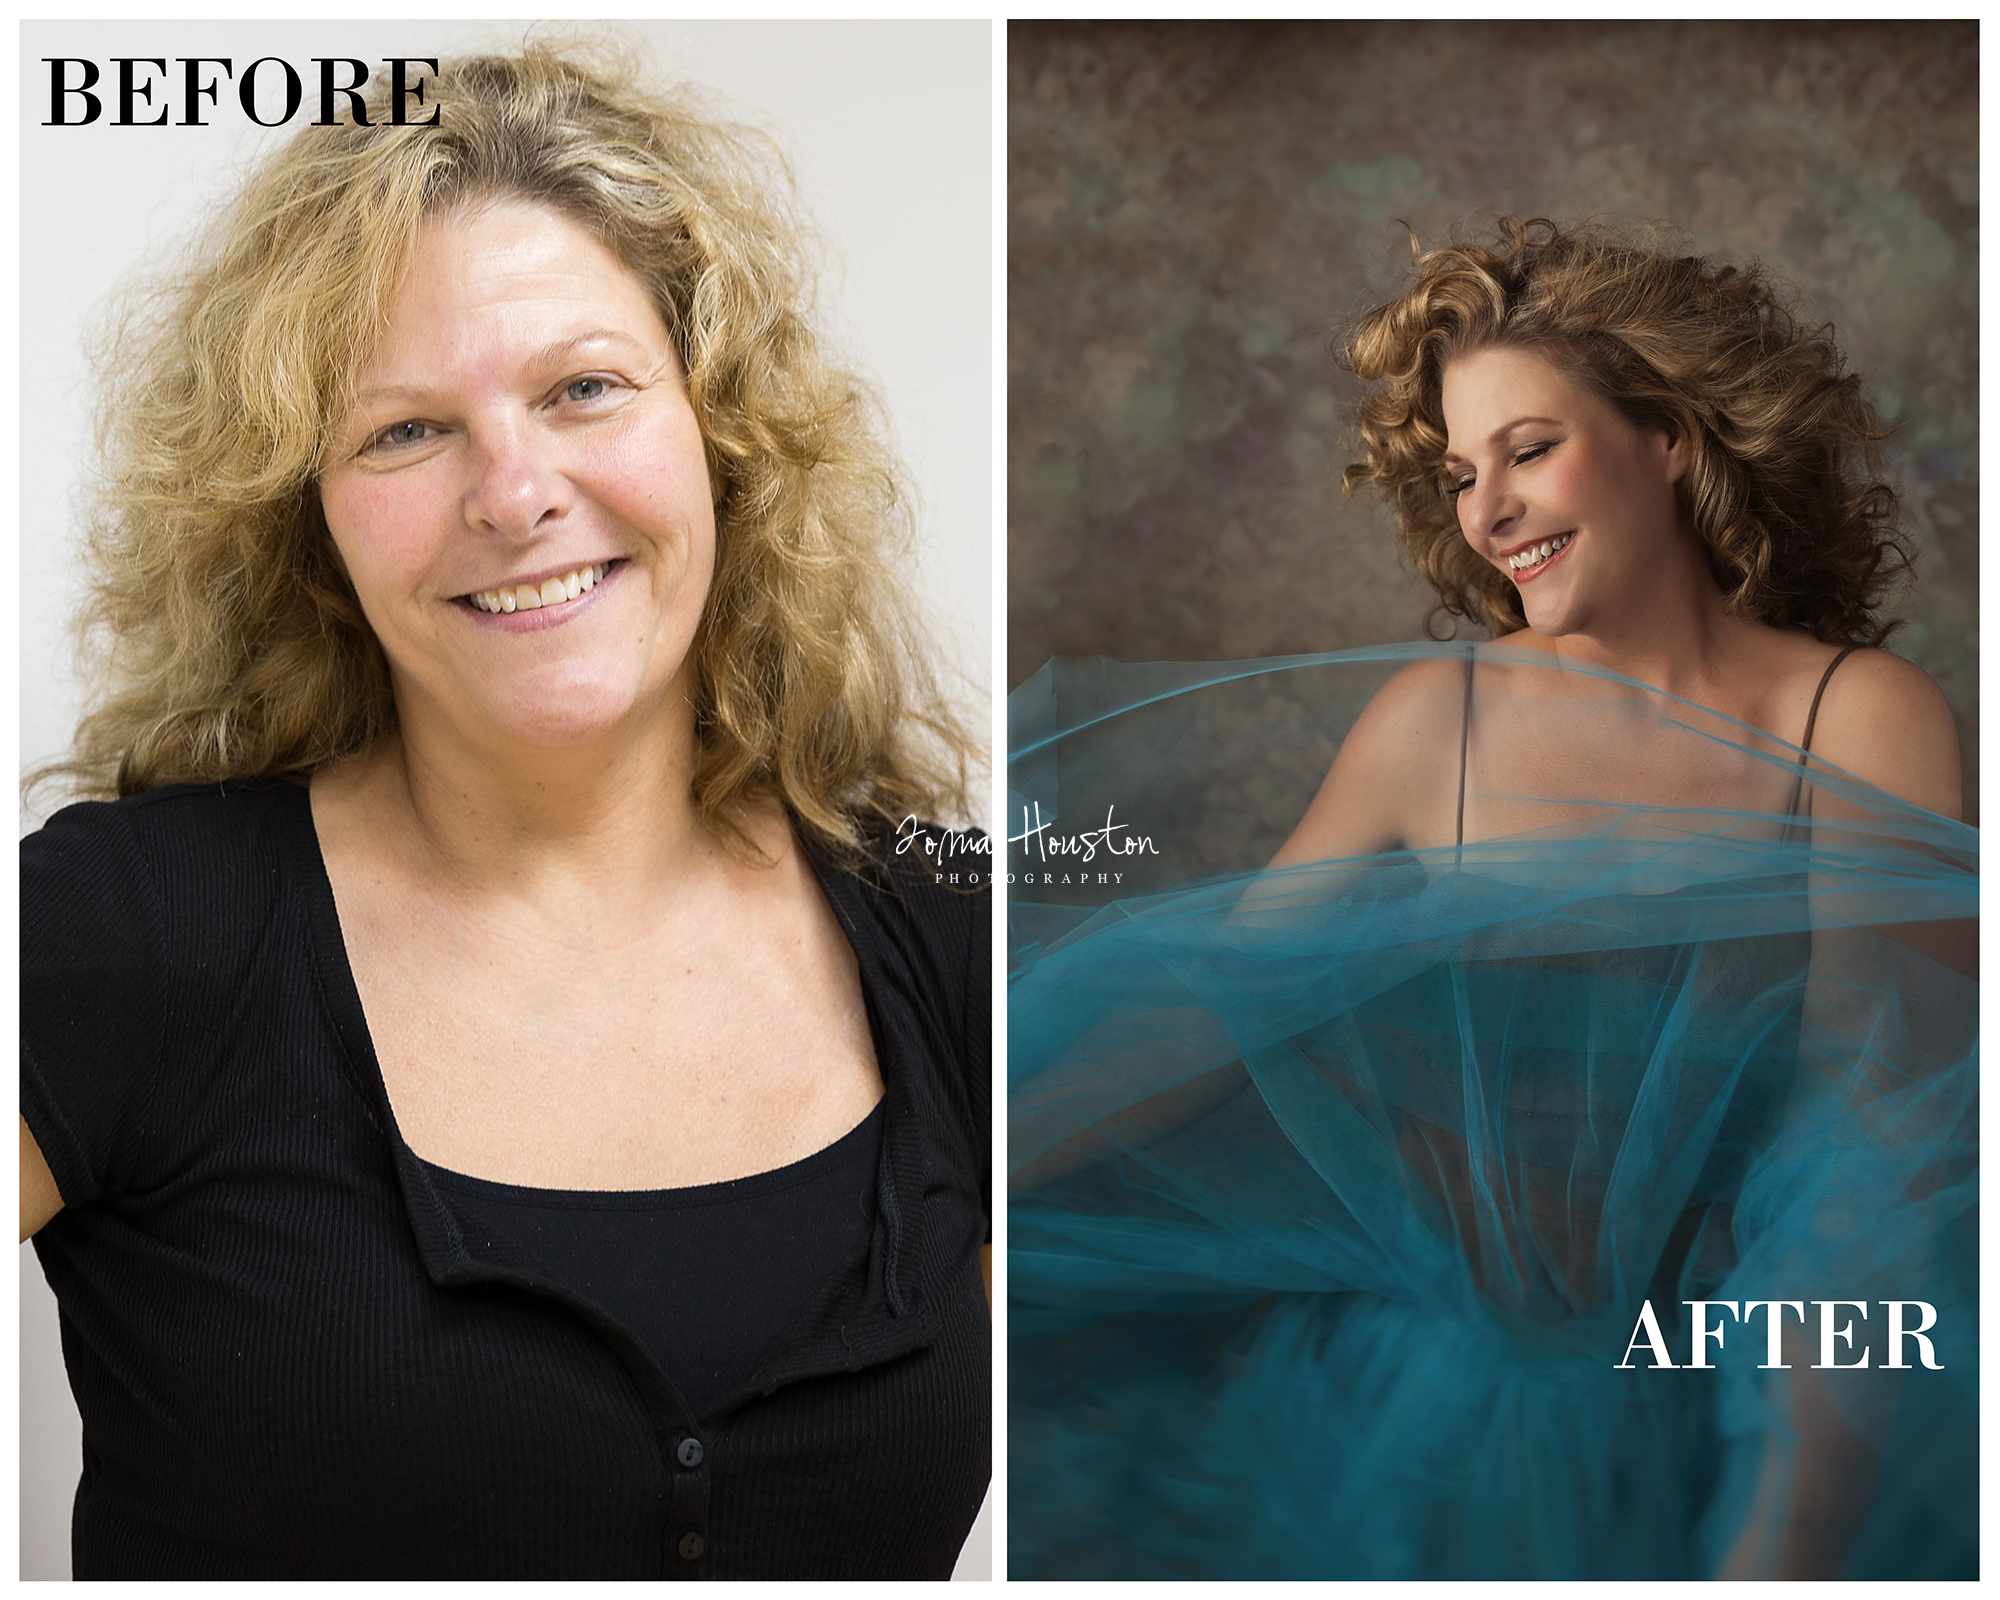 Renee Makeover | Toma Houston Photography Chicago